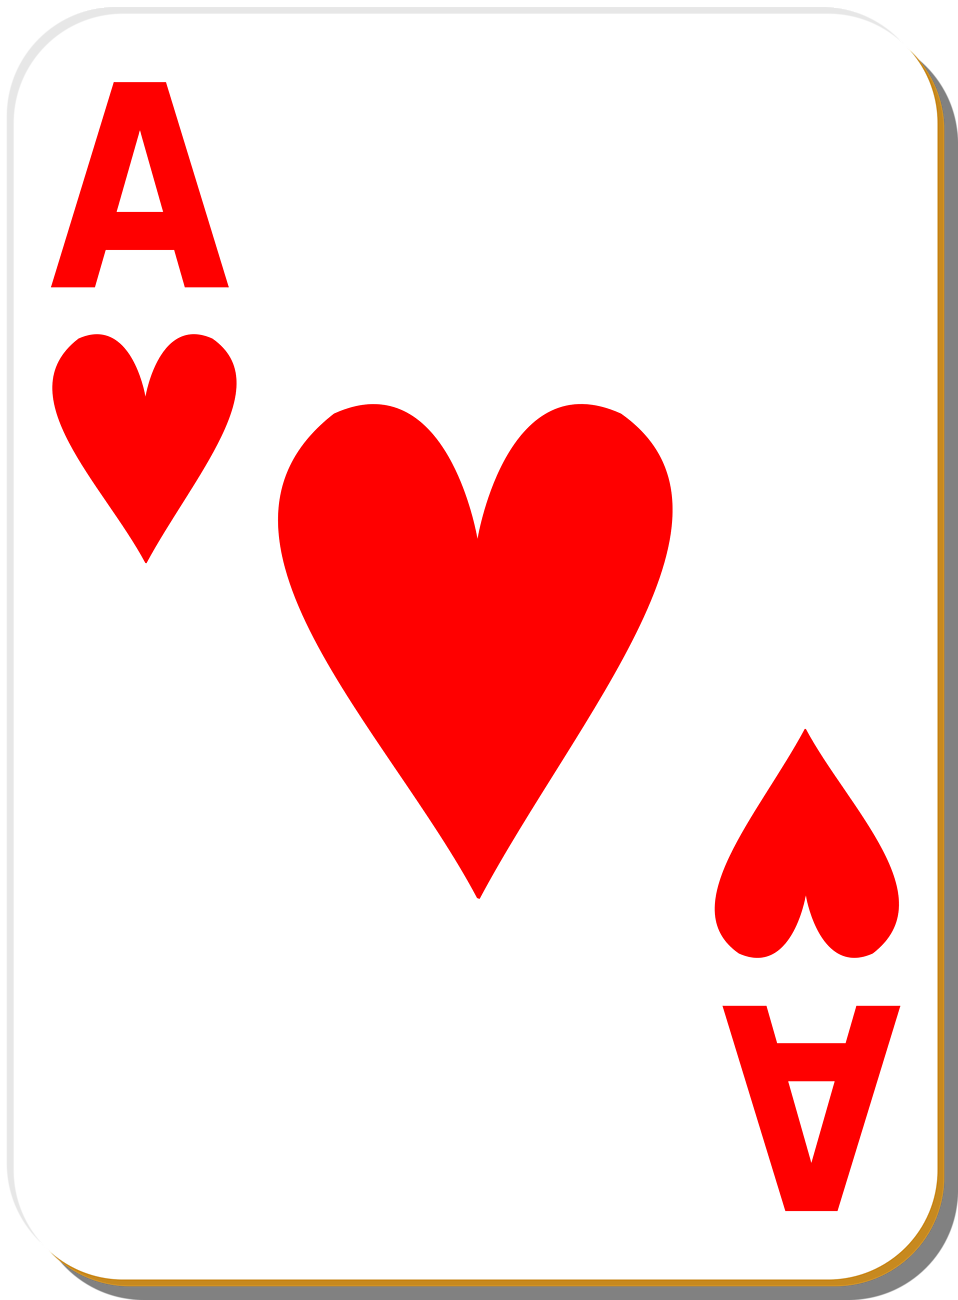 Ace Heart Playing Card Clip Art.